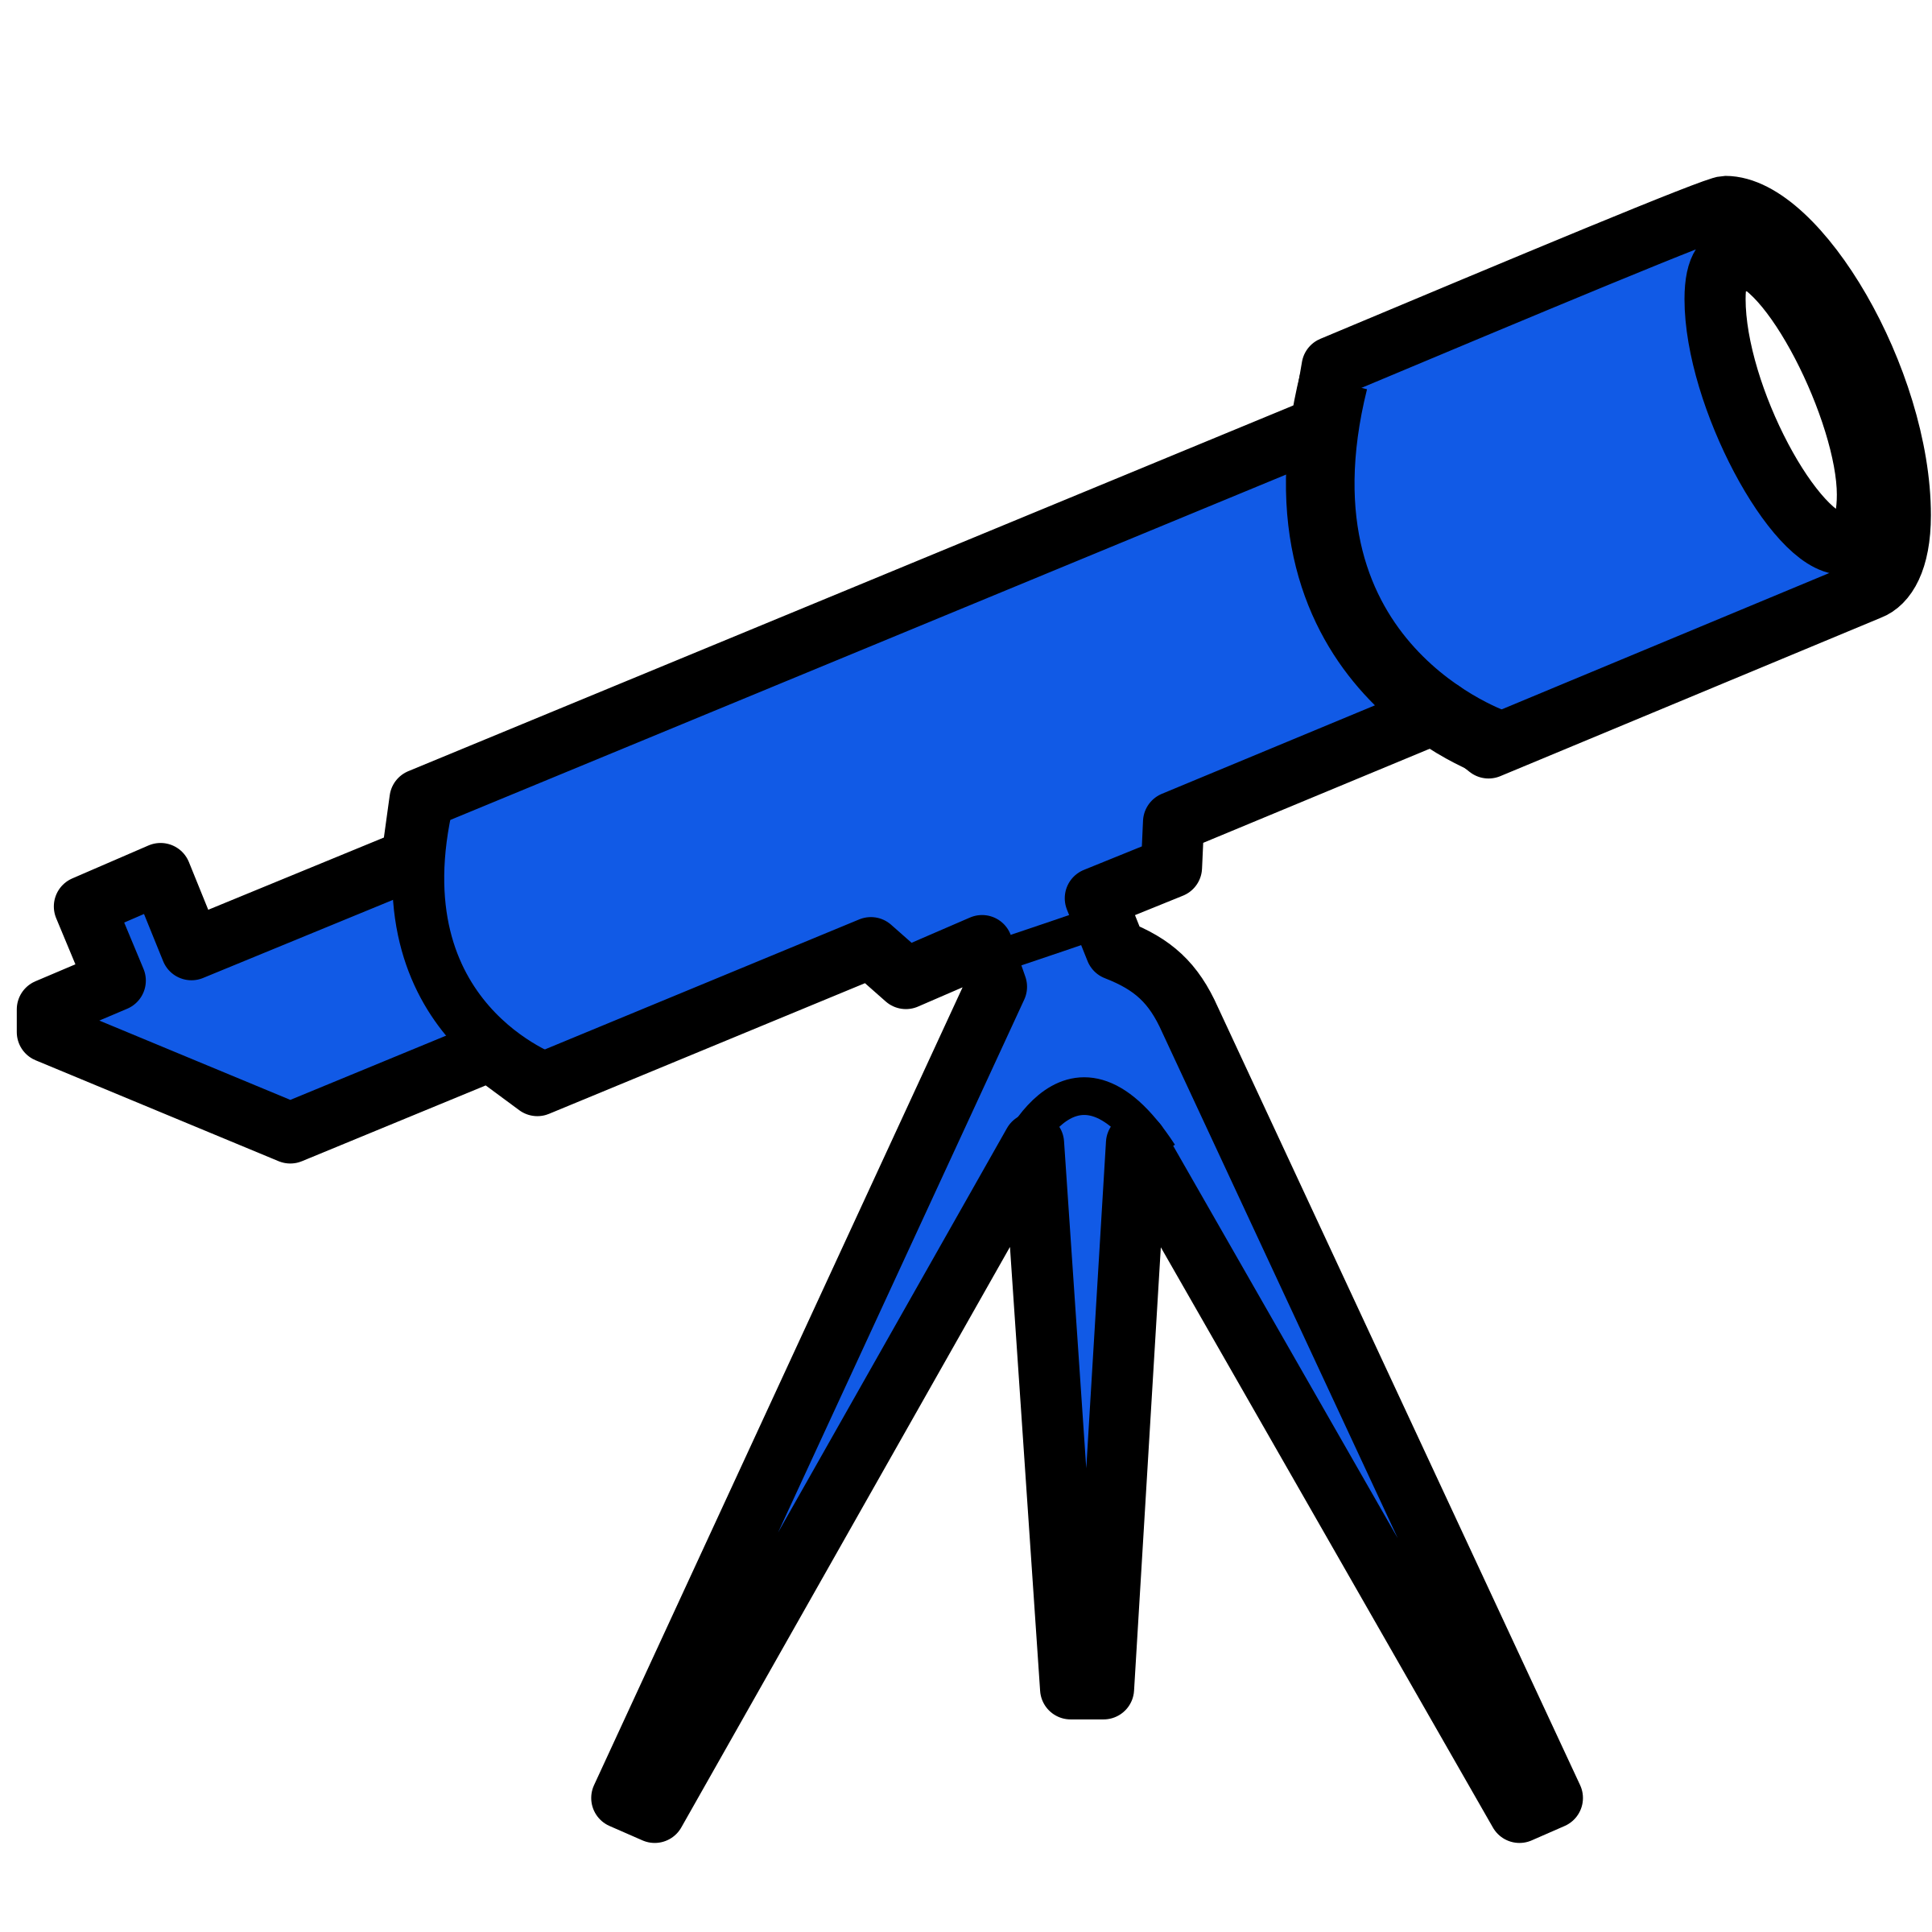 Telescope - blue by Technaturally